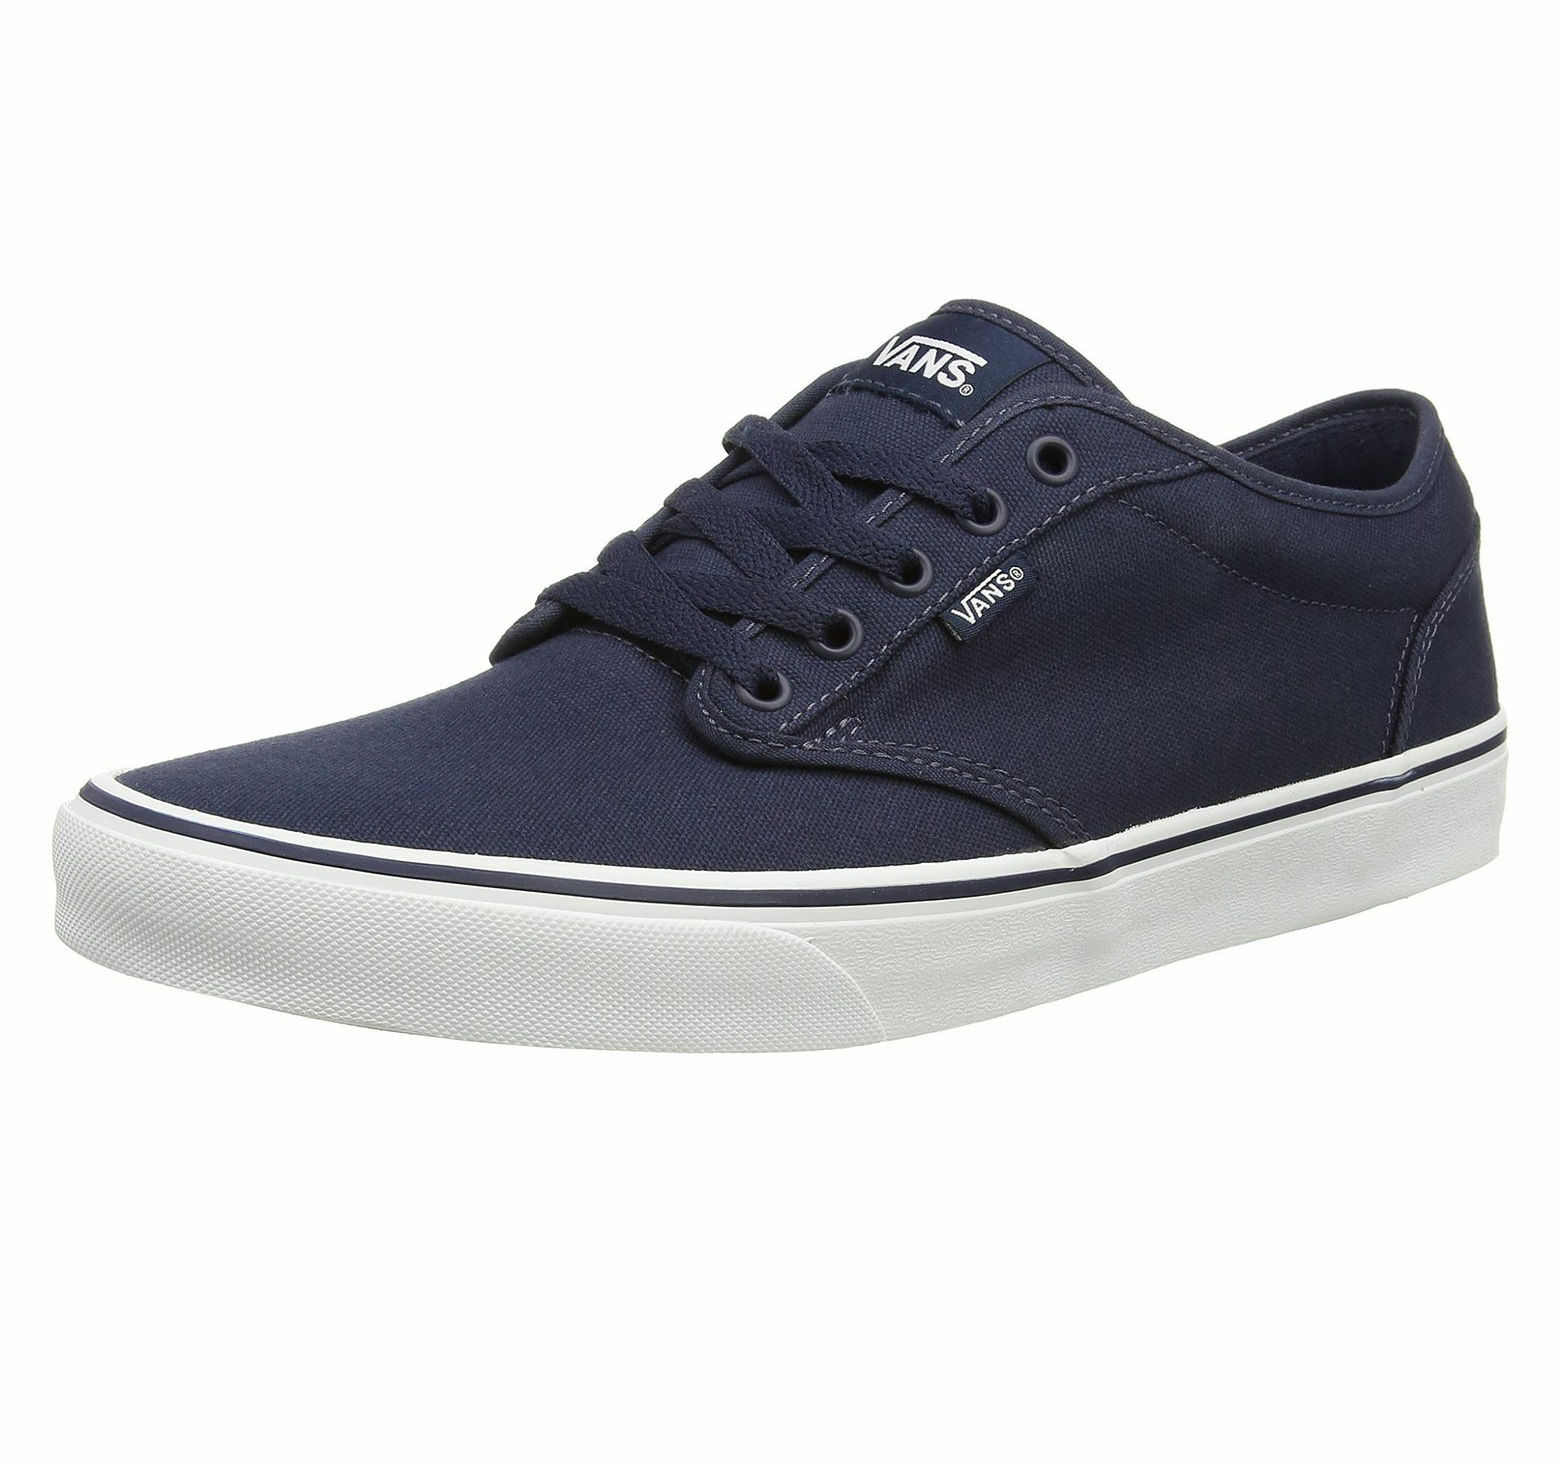 VANS Atwood  Herren Canvas Skater Trainers Plain Schuhes Lace Up Plimsolls Navy Wei